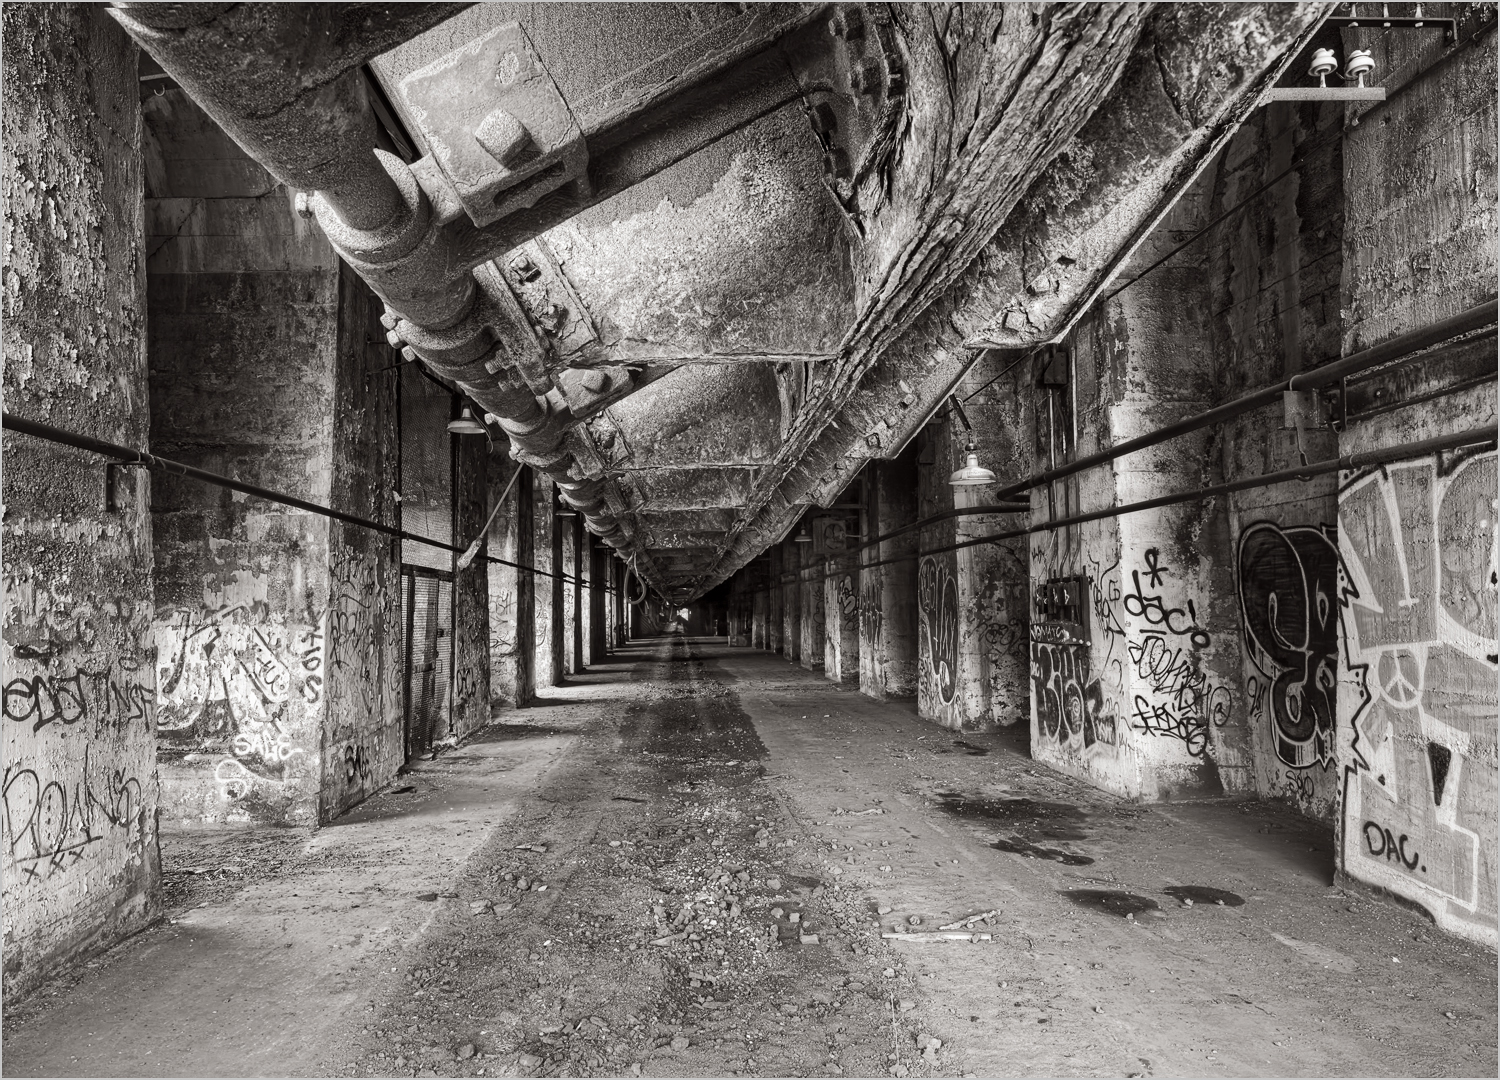 The Stock House at the Carrie Furnace. The dark area on the ground is where train tracks ran, to allow 'Larry Cars' to receive tons of raw materials from the overhead hoppers.